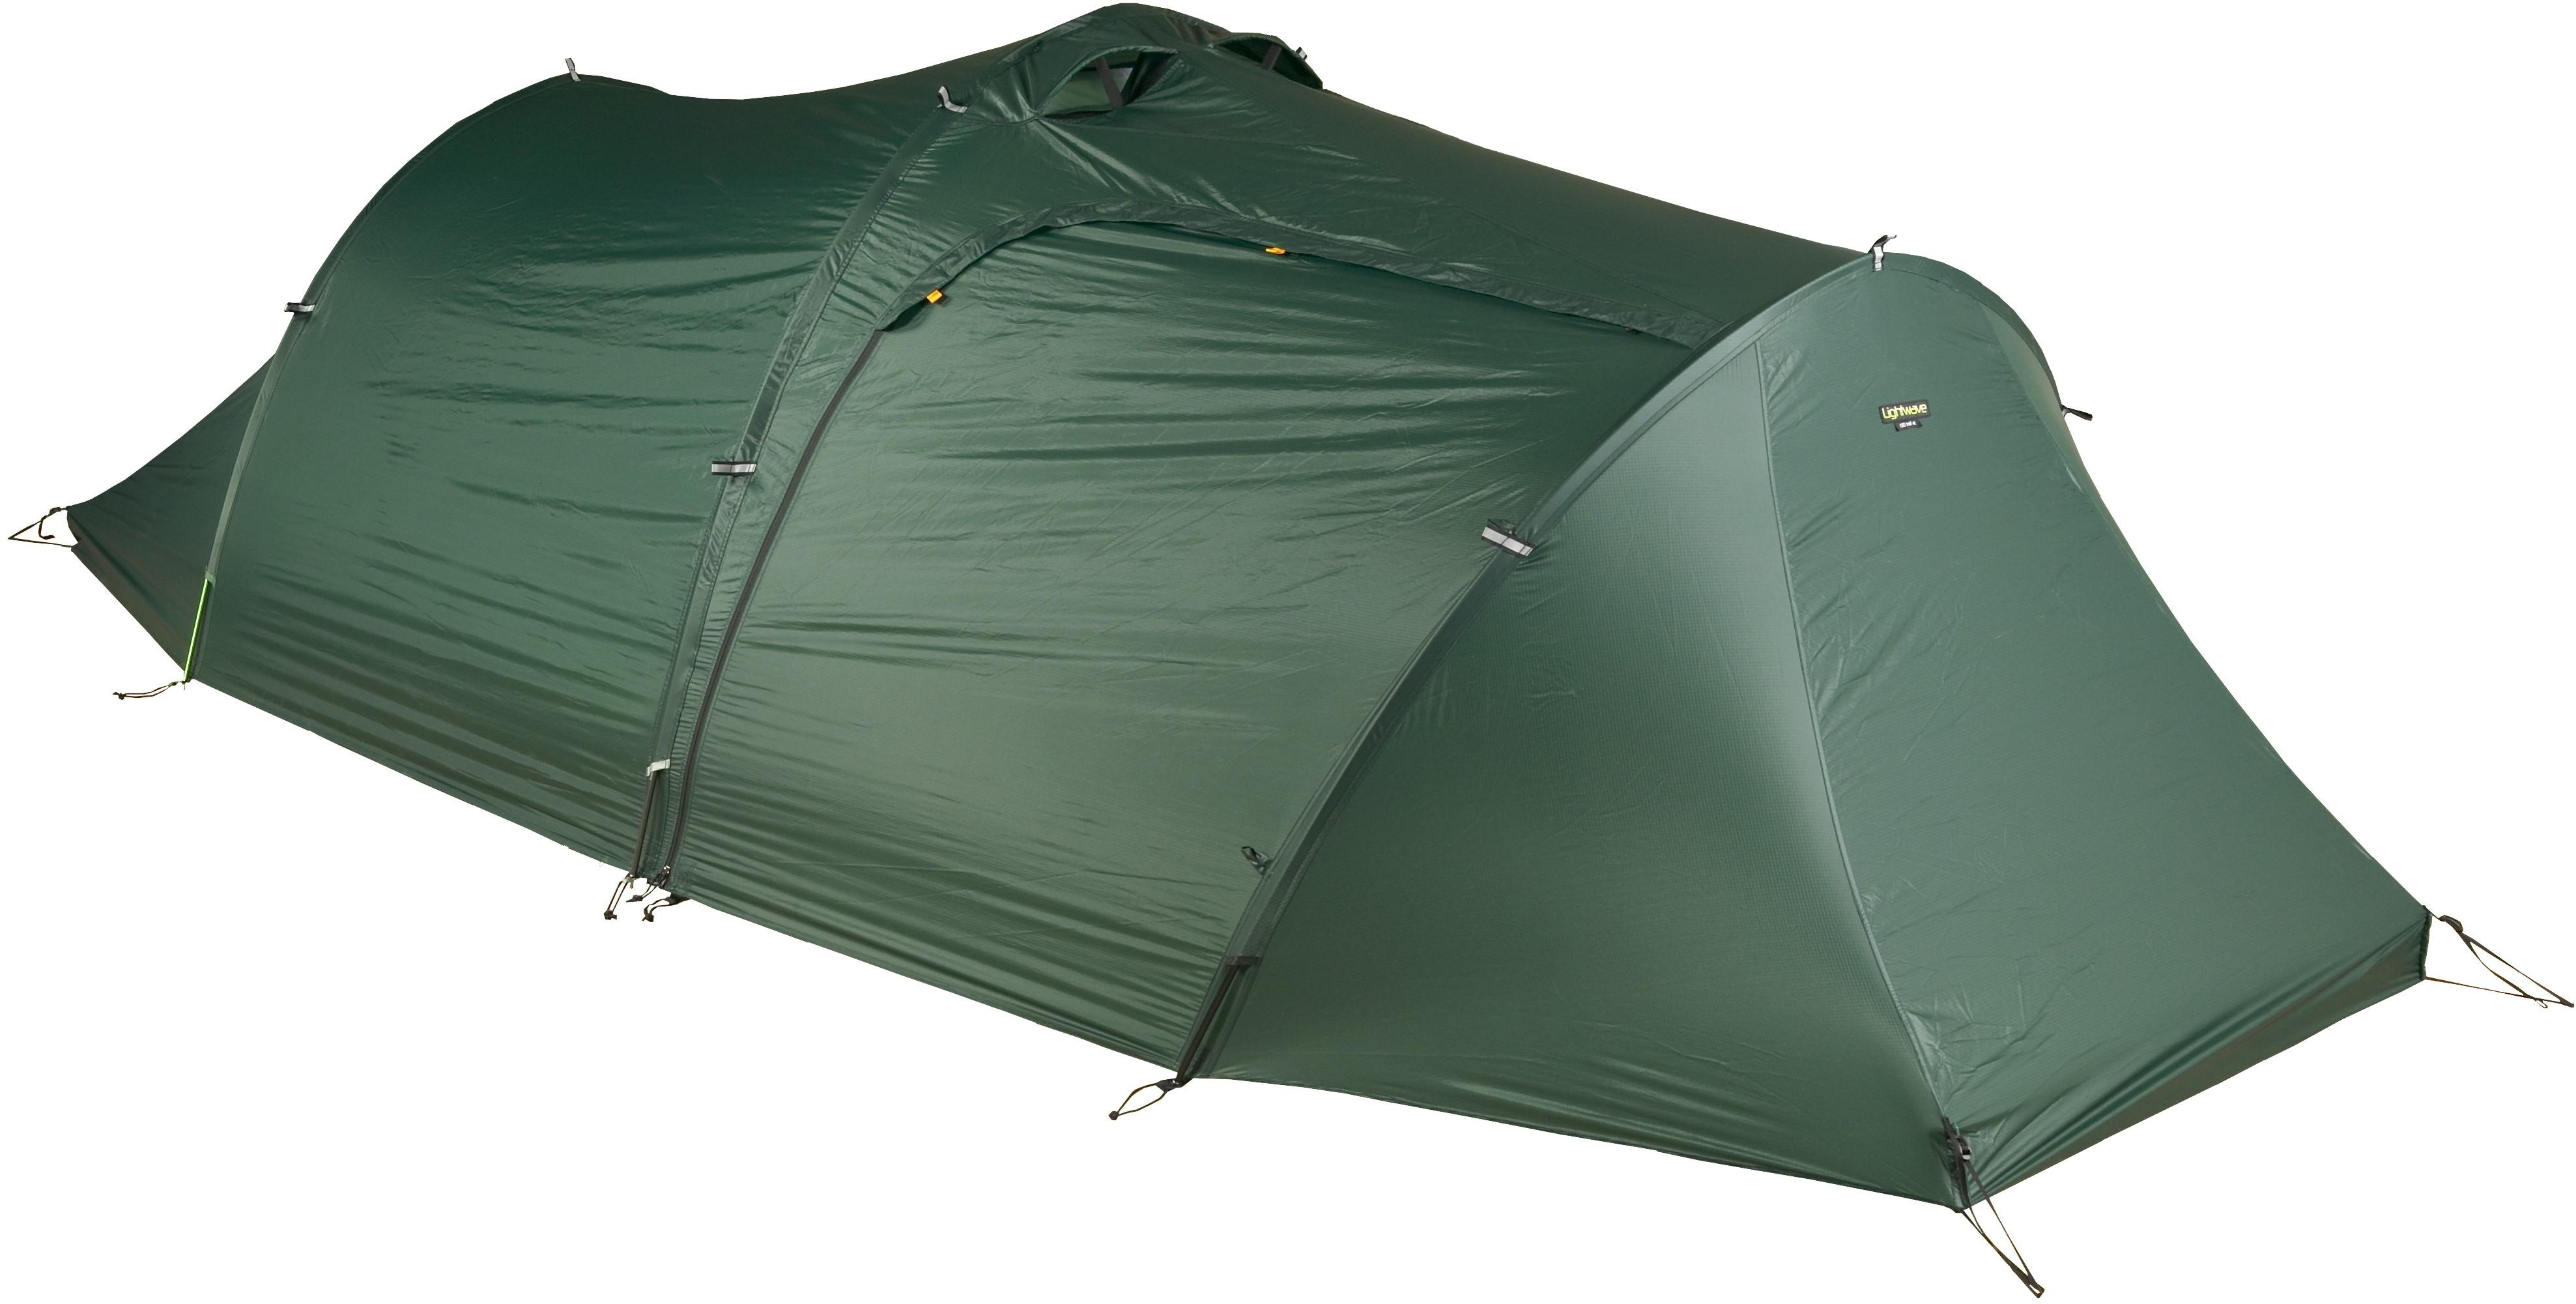 Lightwave T30 Trail XT tent